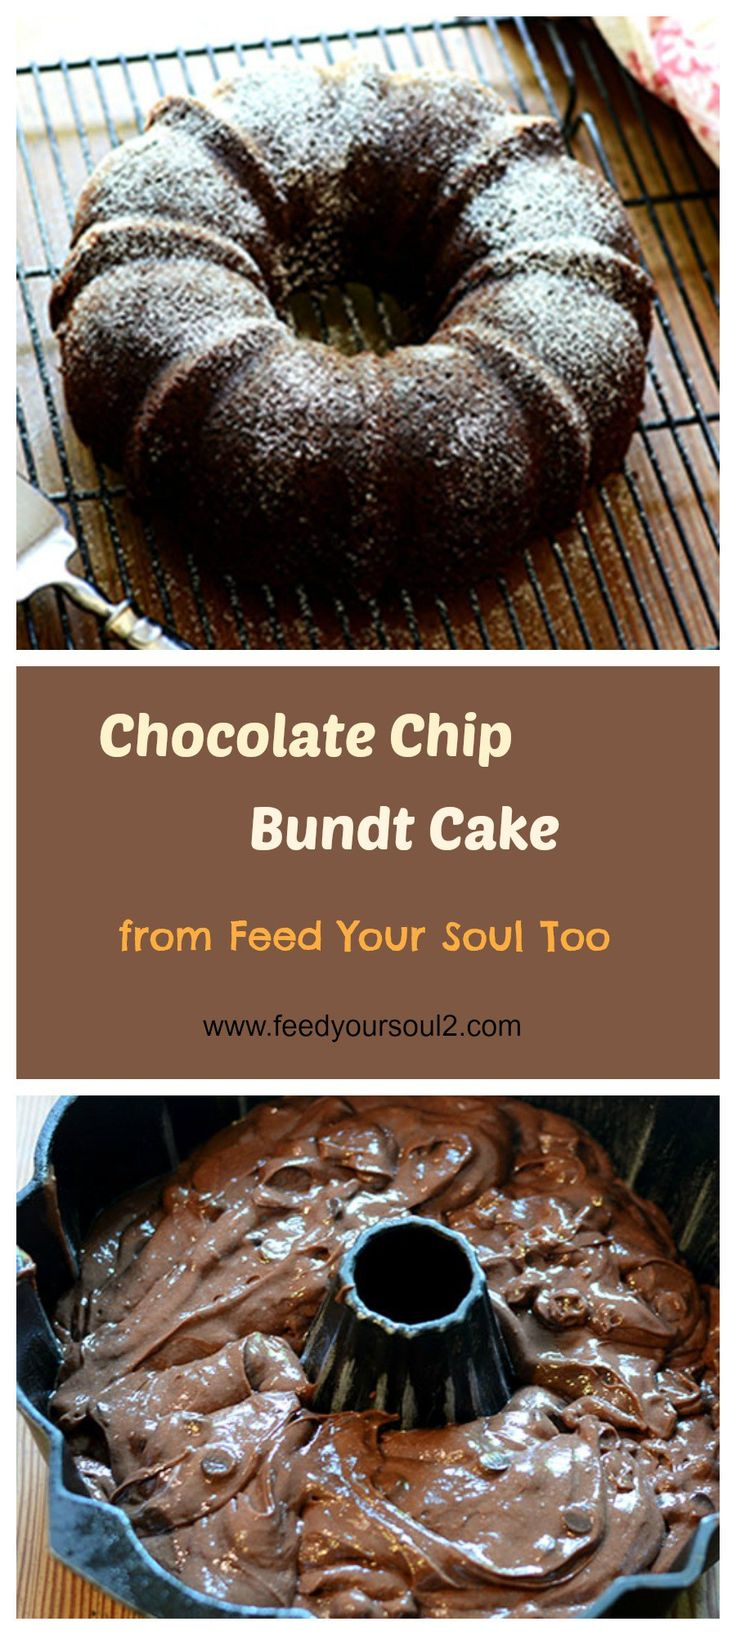 Chocolate Chip Bundt Cake from Feed Your Soul Too